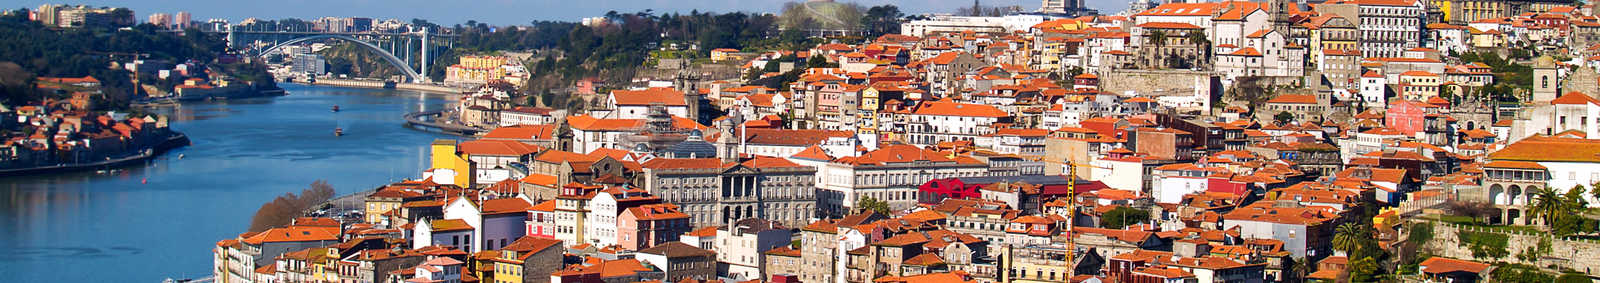 Panorama of Porto, Portugal